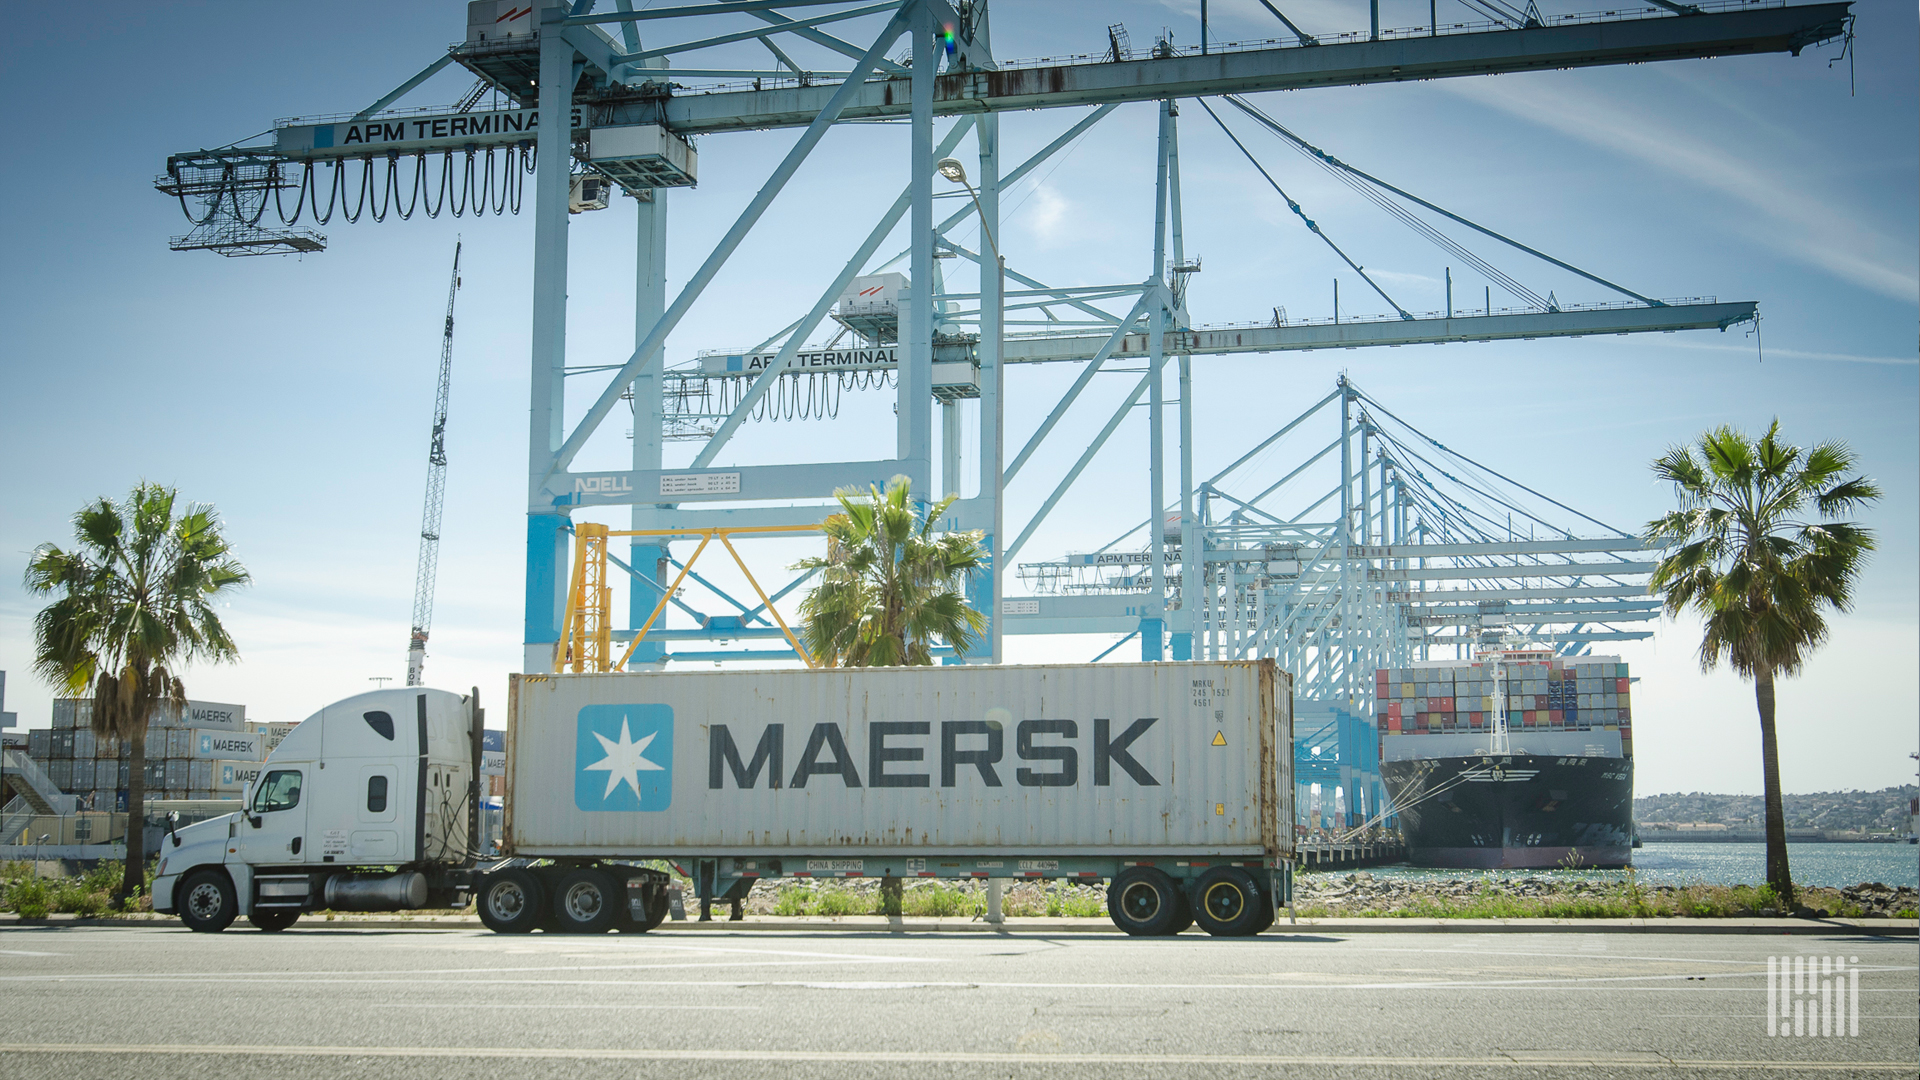 A truck carrying a Maersk container is in front of a number of cranes used to load/unload cargo ships.